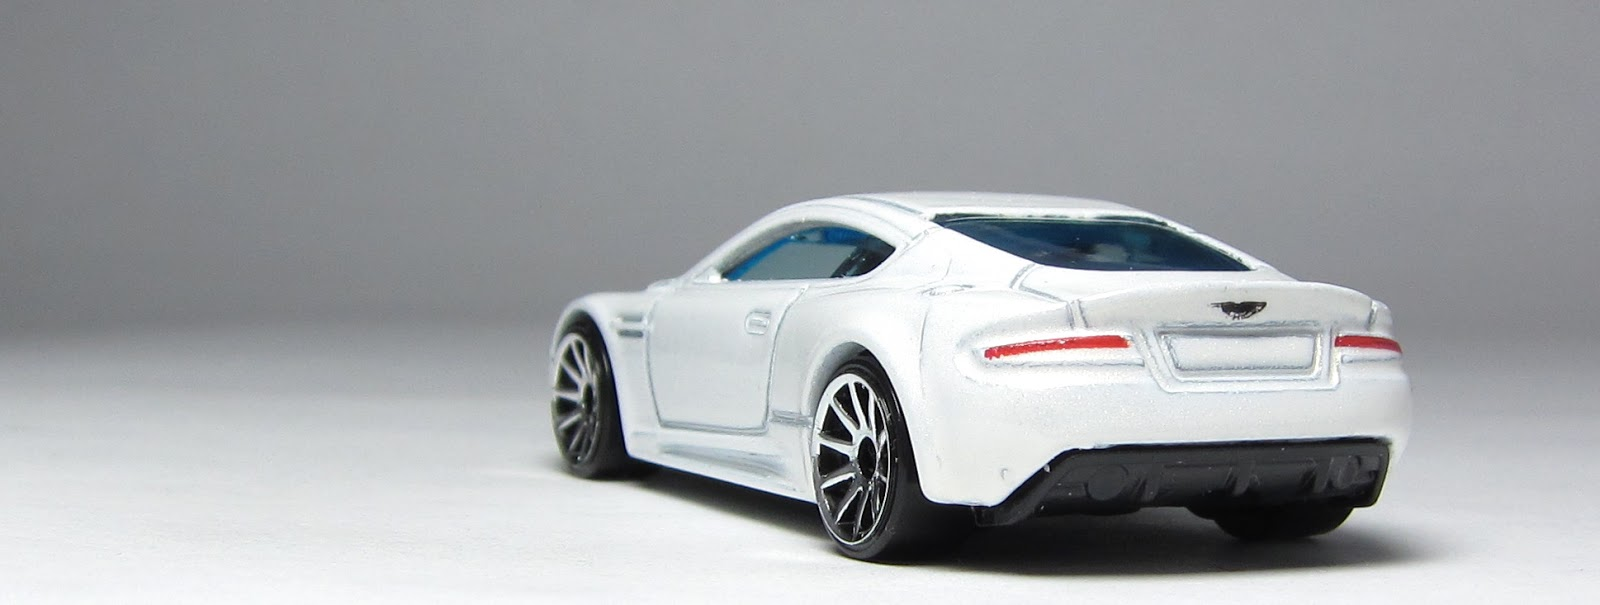 Car Lamley Group First Look Hot Wheels Aston Martin Dbs In White And The Tail Lights Are Back